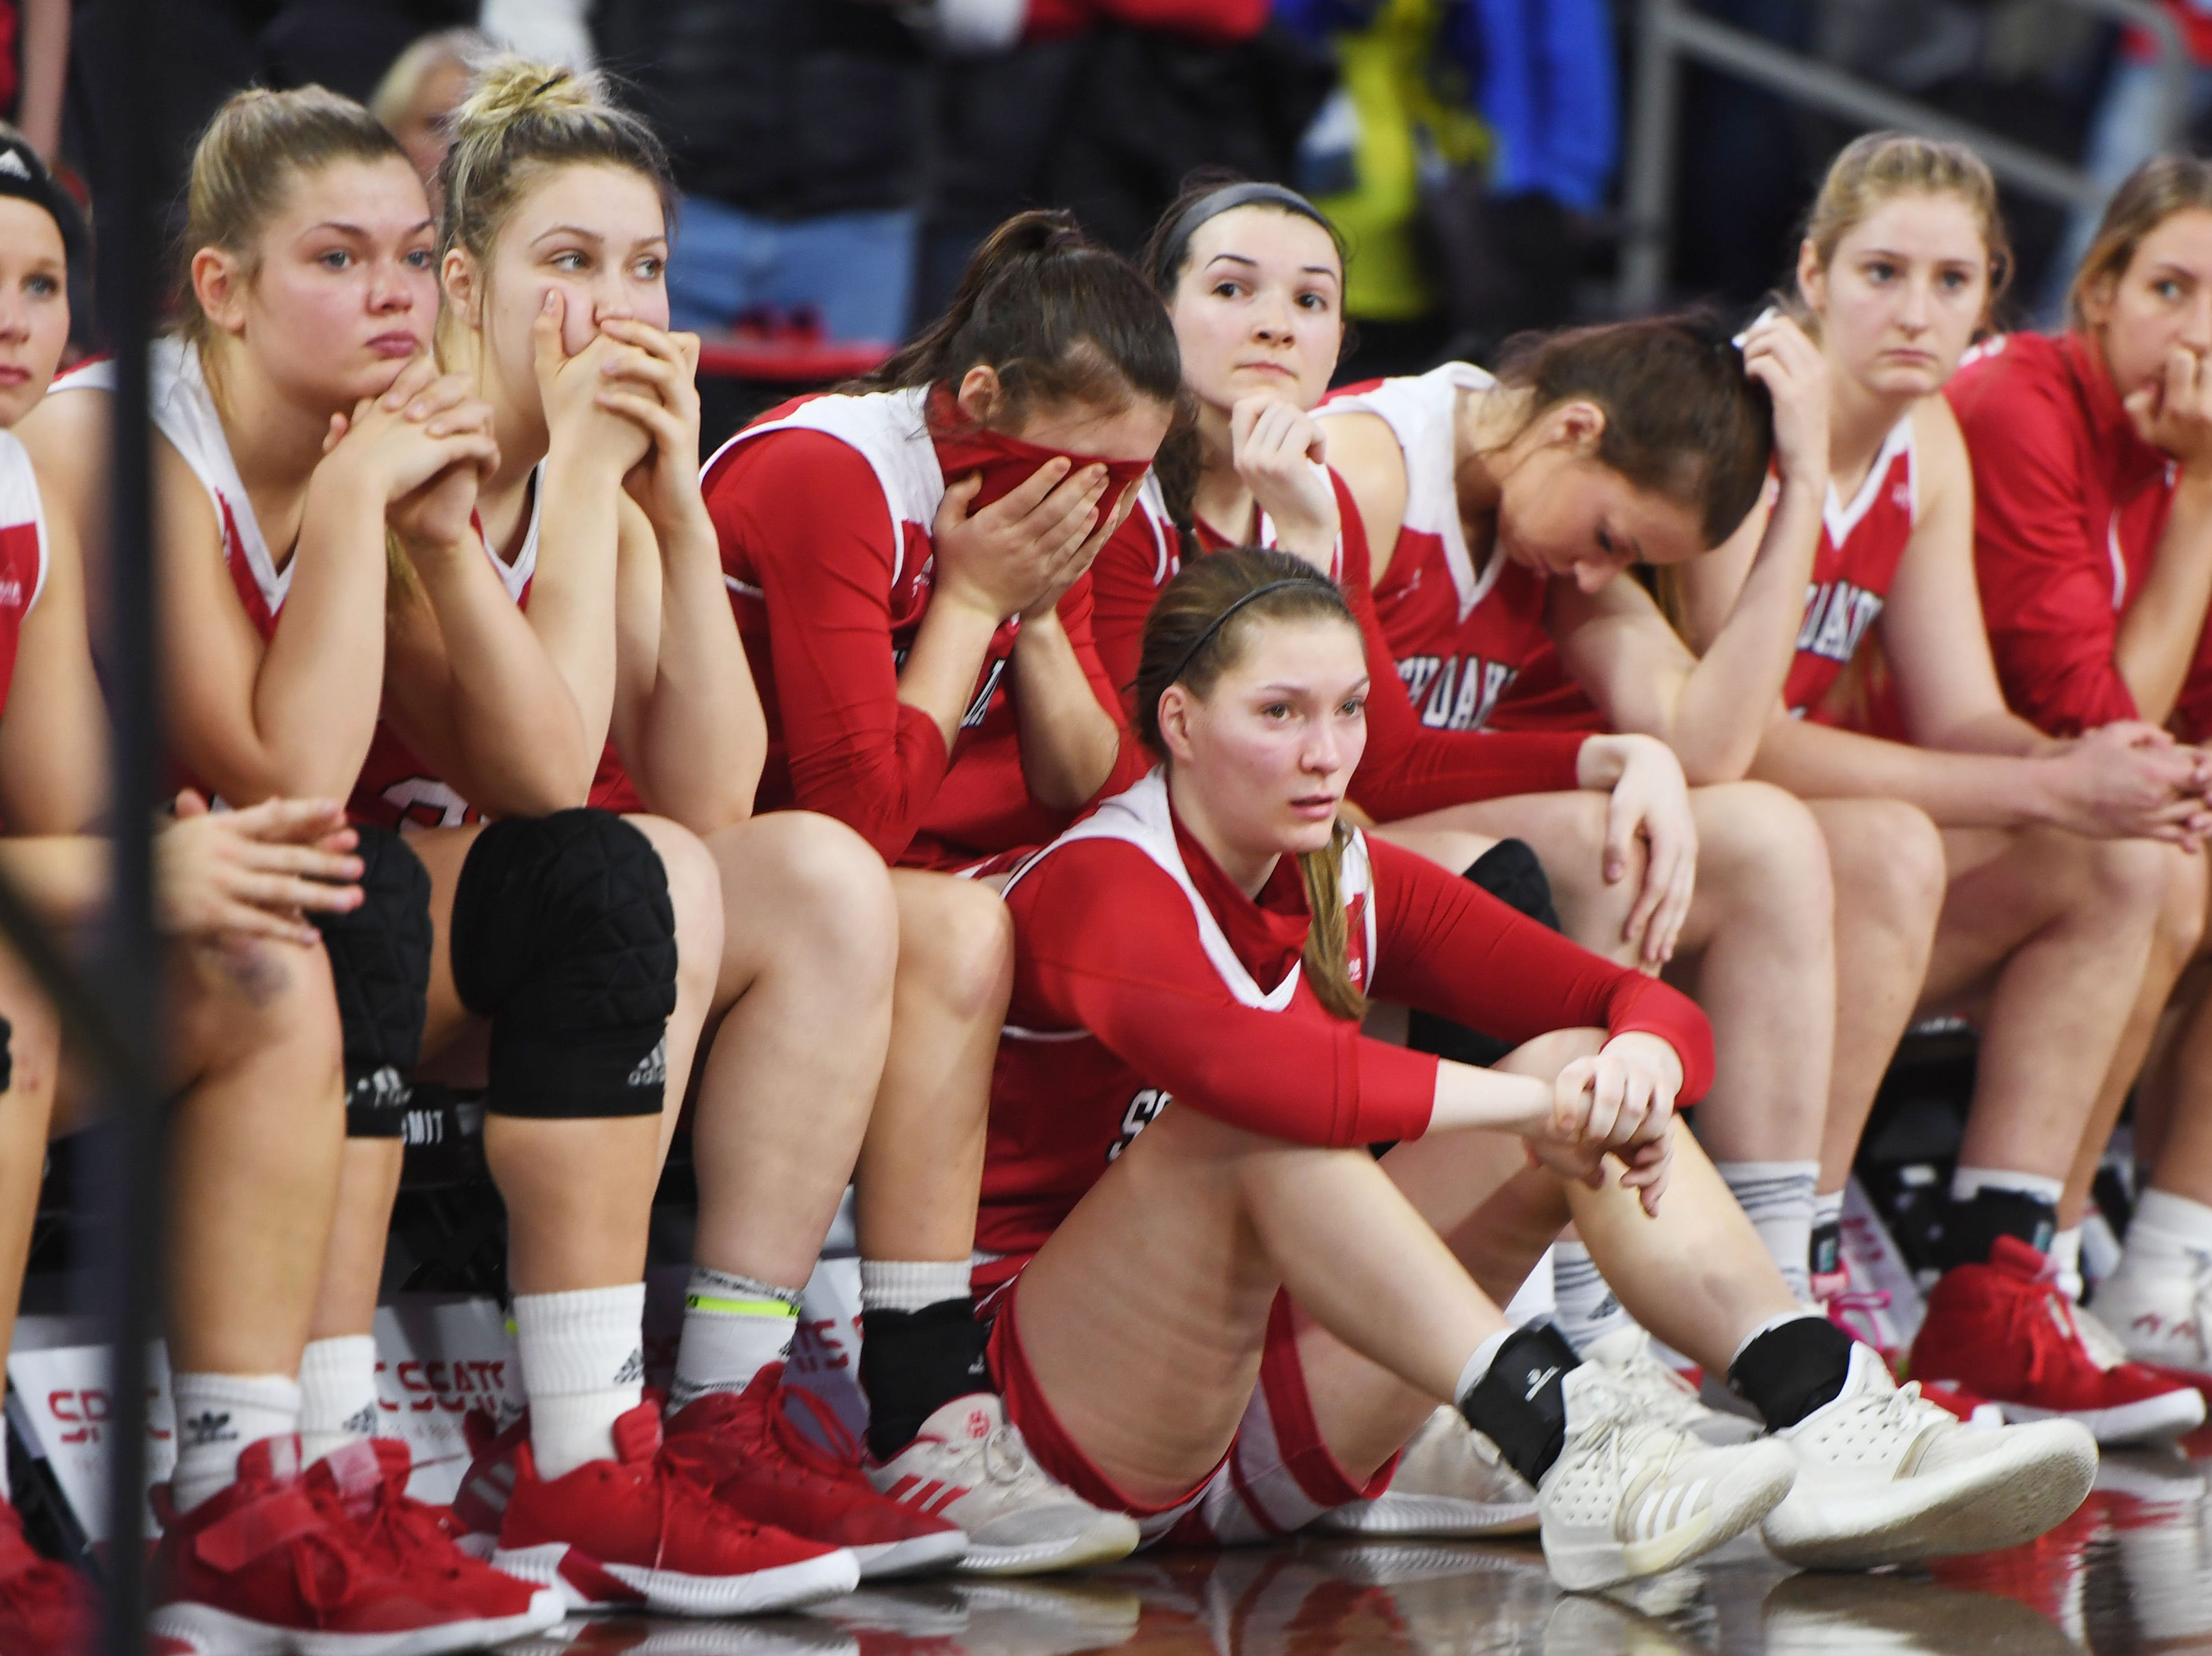 USD goes to their bench after the lose against SDSU Tuesday, March 12, in the Summit League women's championship at the Denny Sanford Premier Center in Sioux Falls.